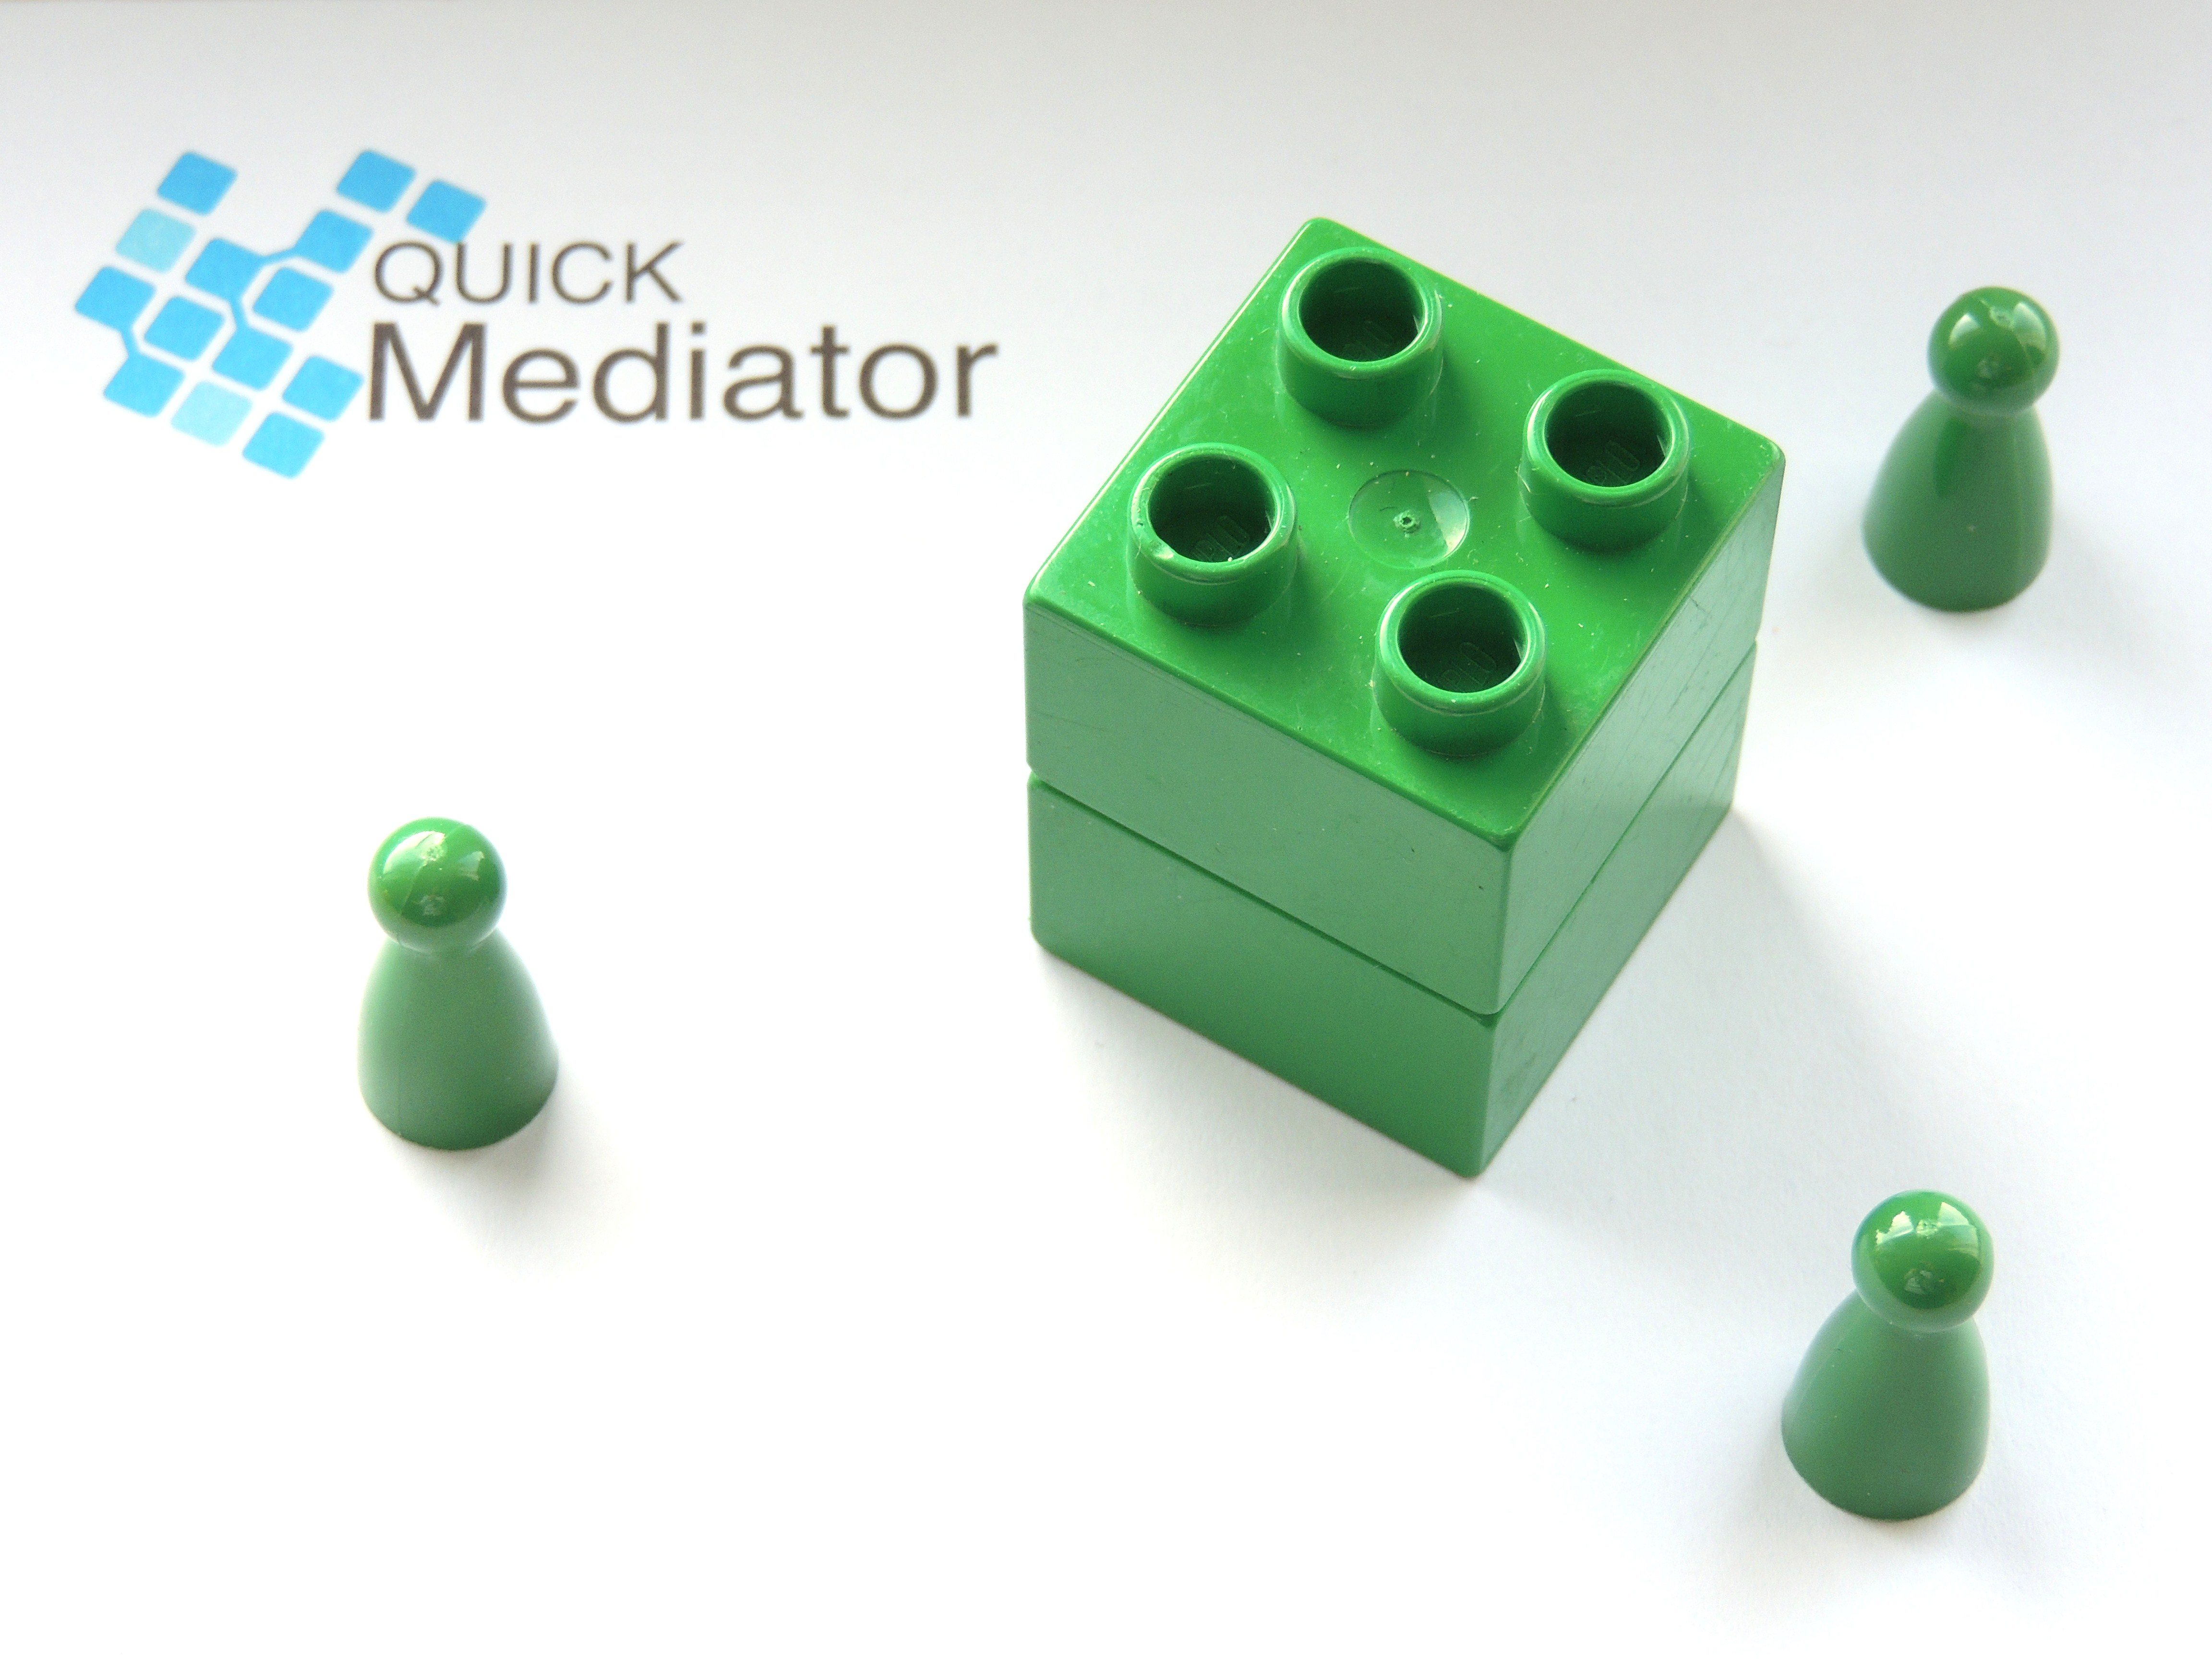 QuickMediator